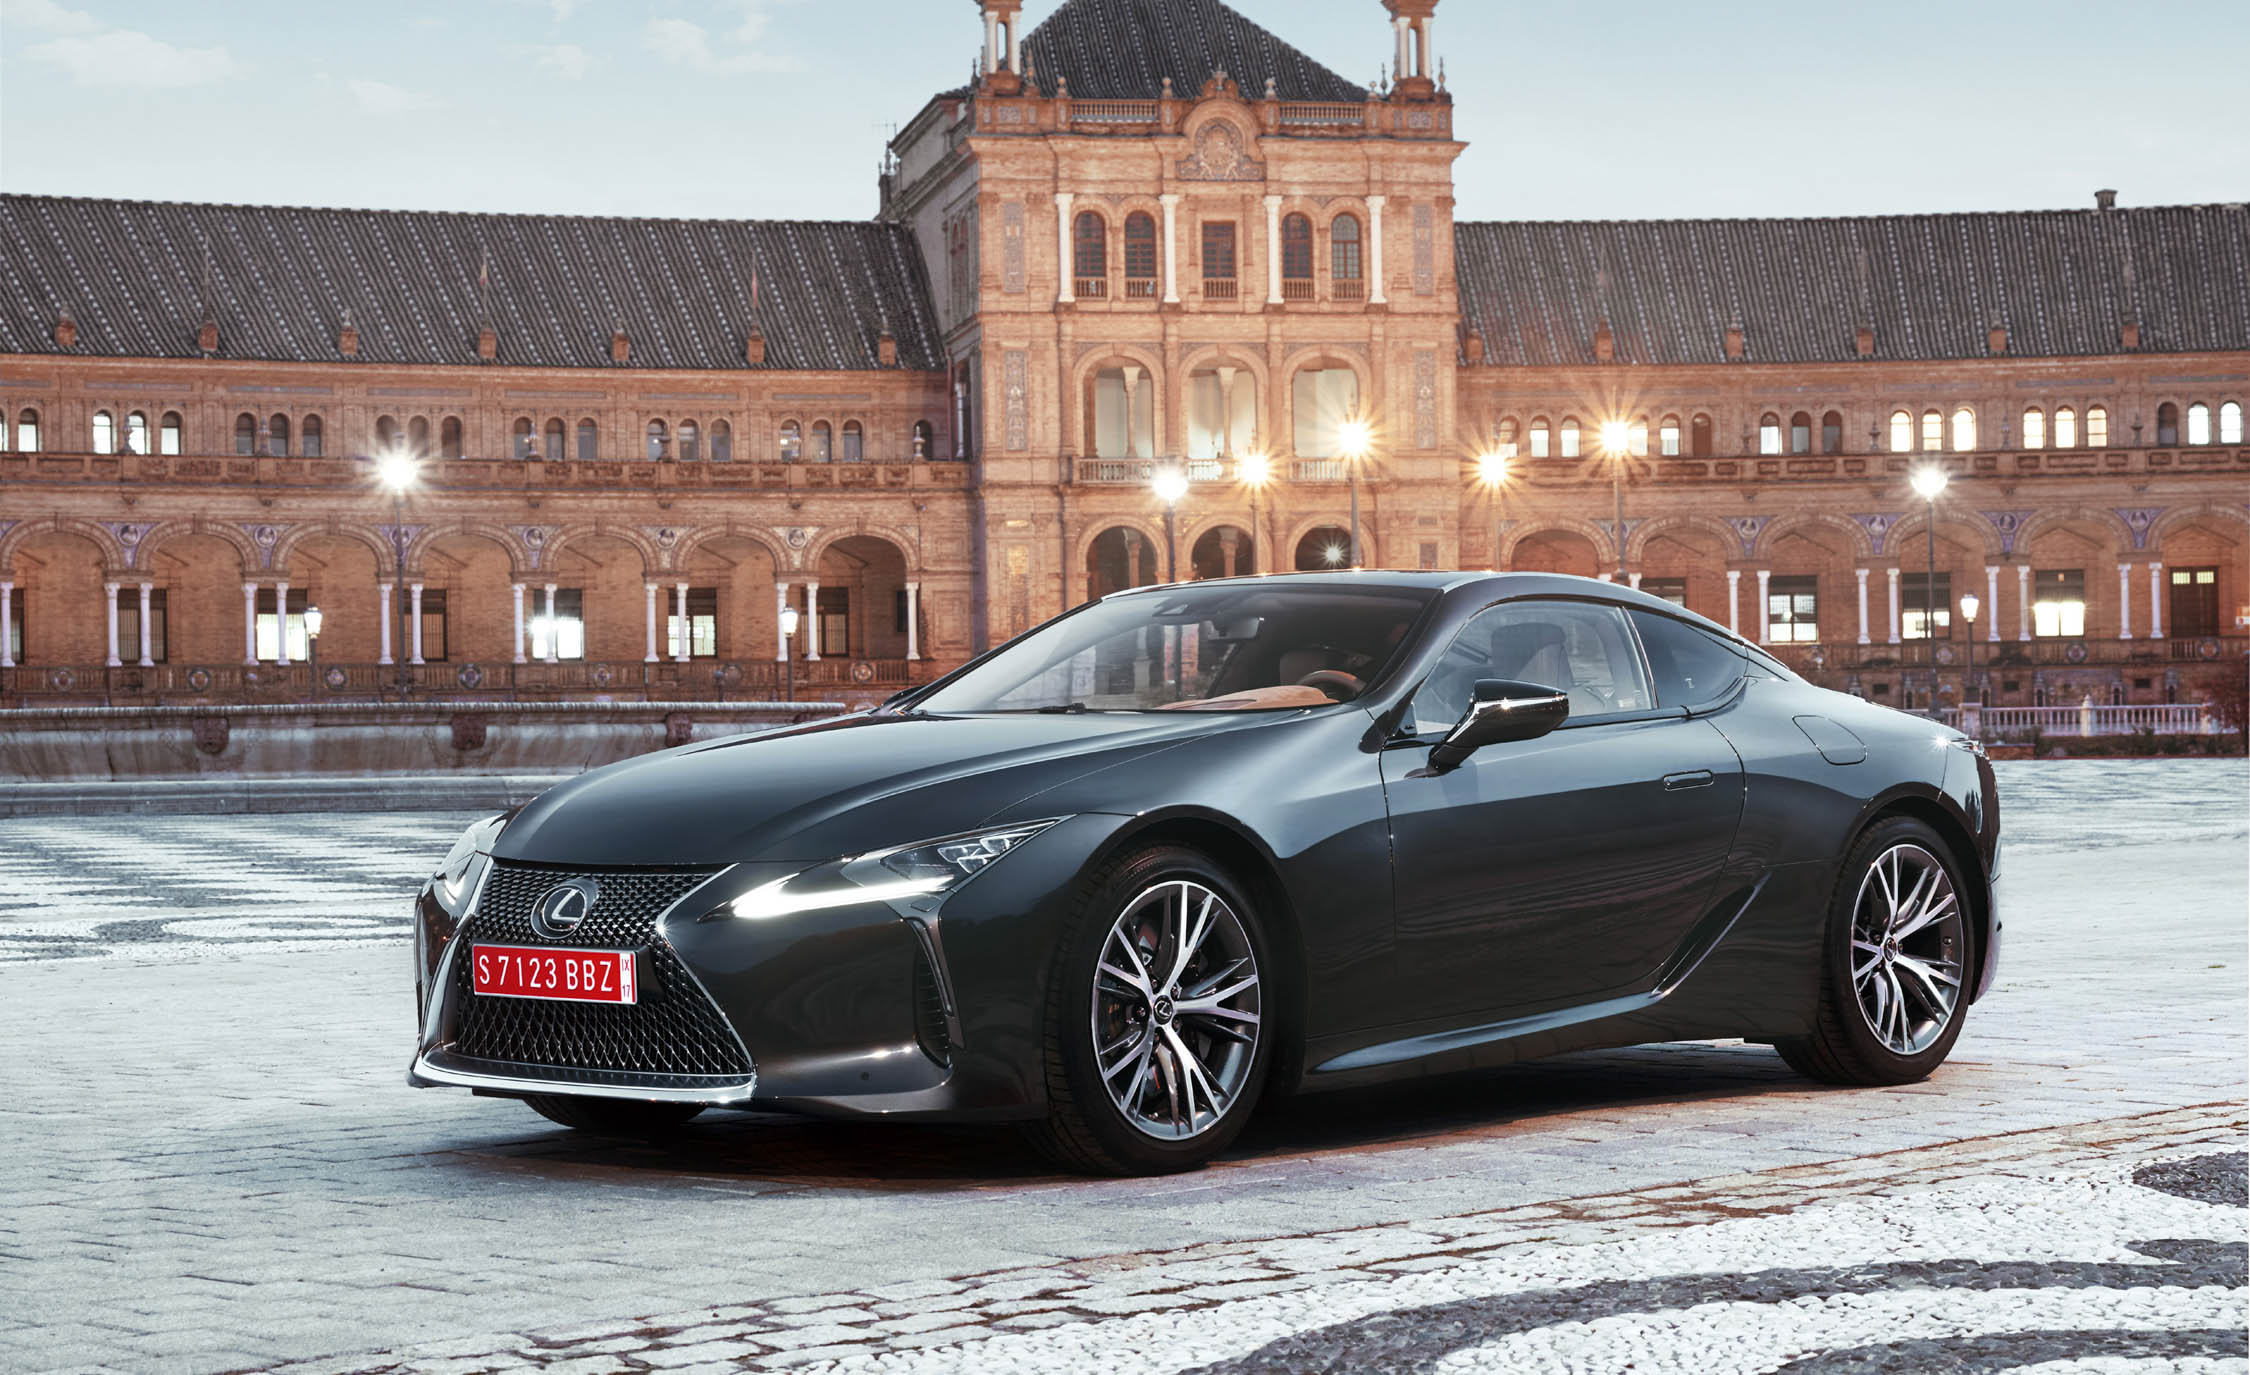 2018 Lexus Lc 500 Black Exterior Side And Front (Photo 6 of 84)